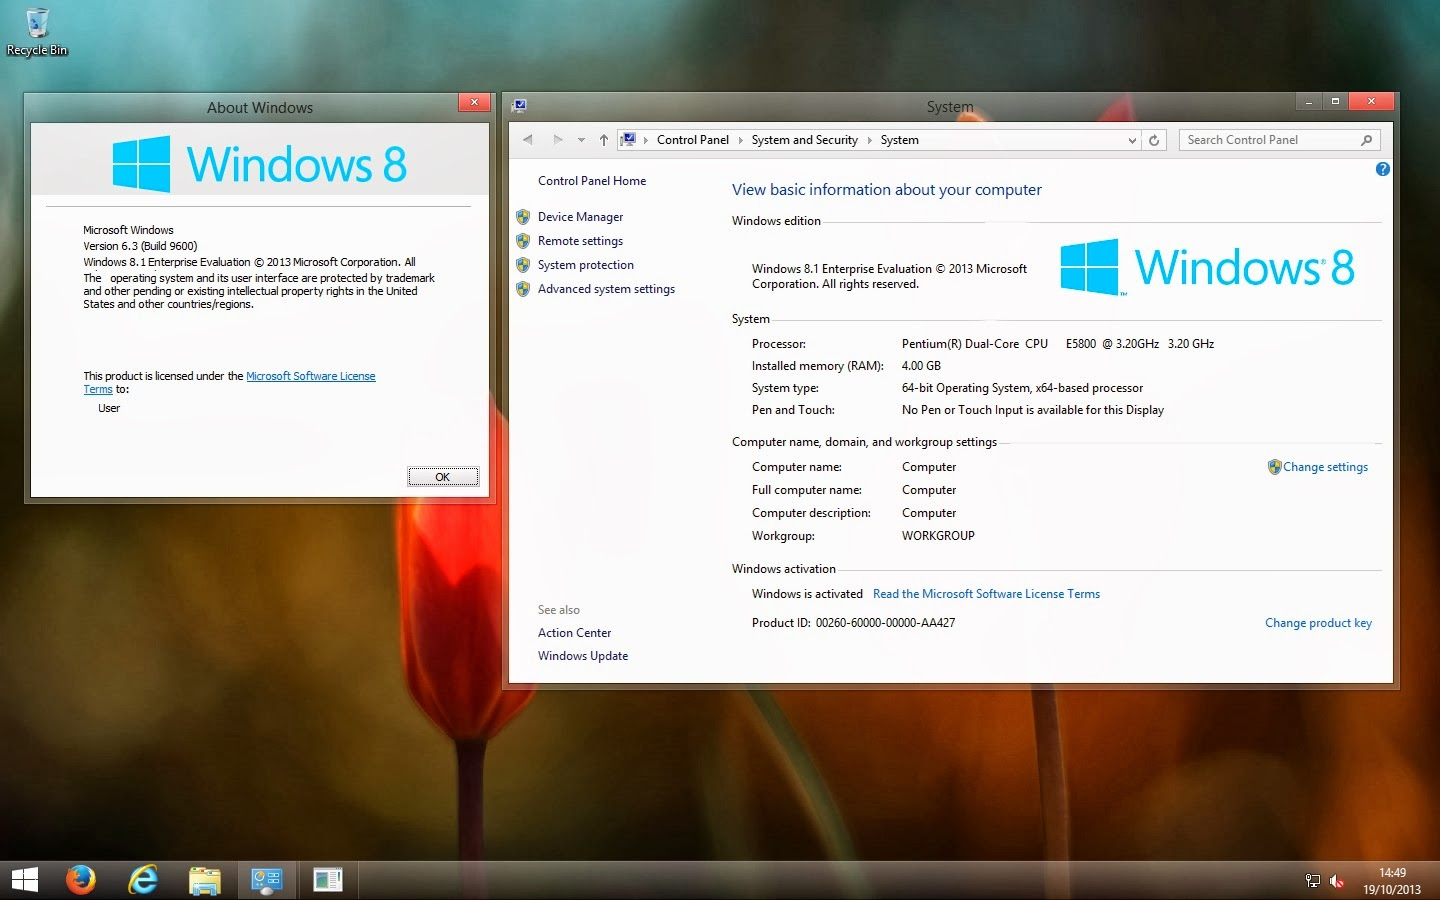 How to Remove watermark from Windows 8.1 Enterprise Evaluation